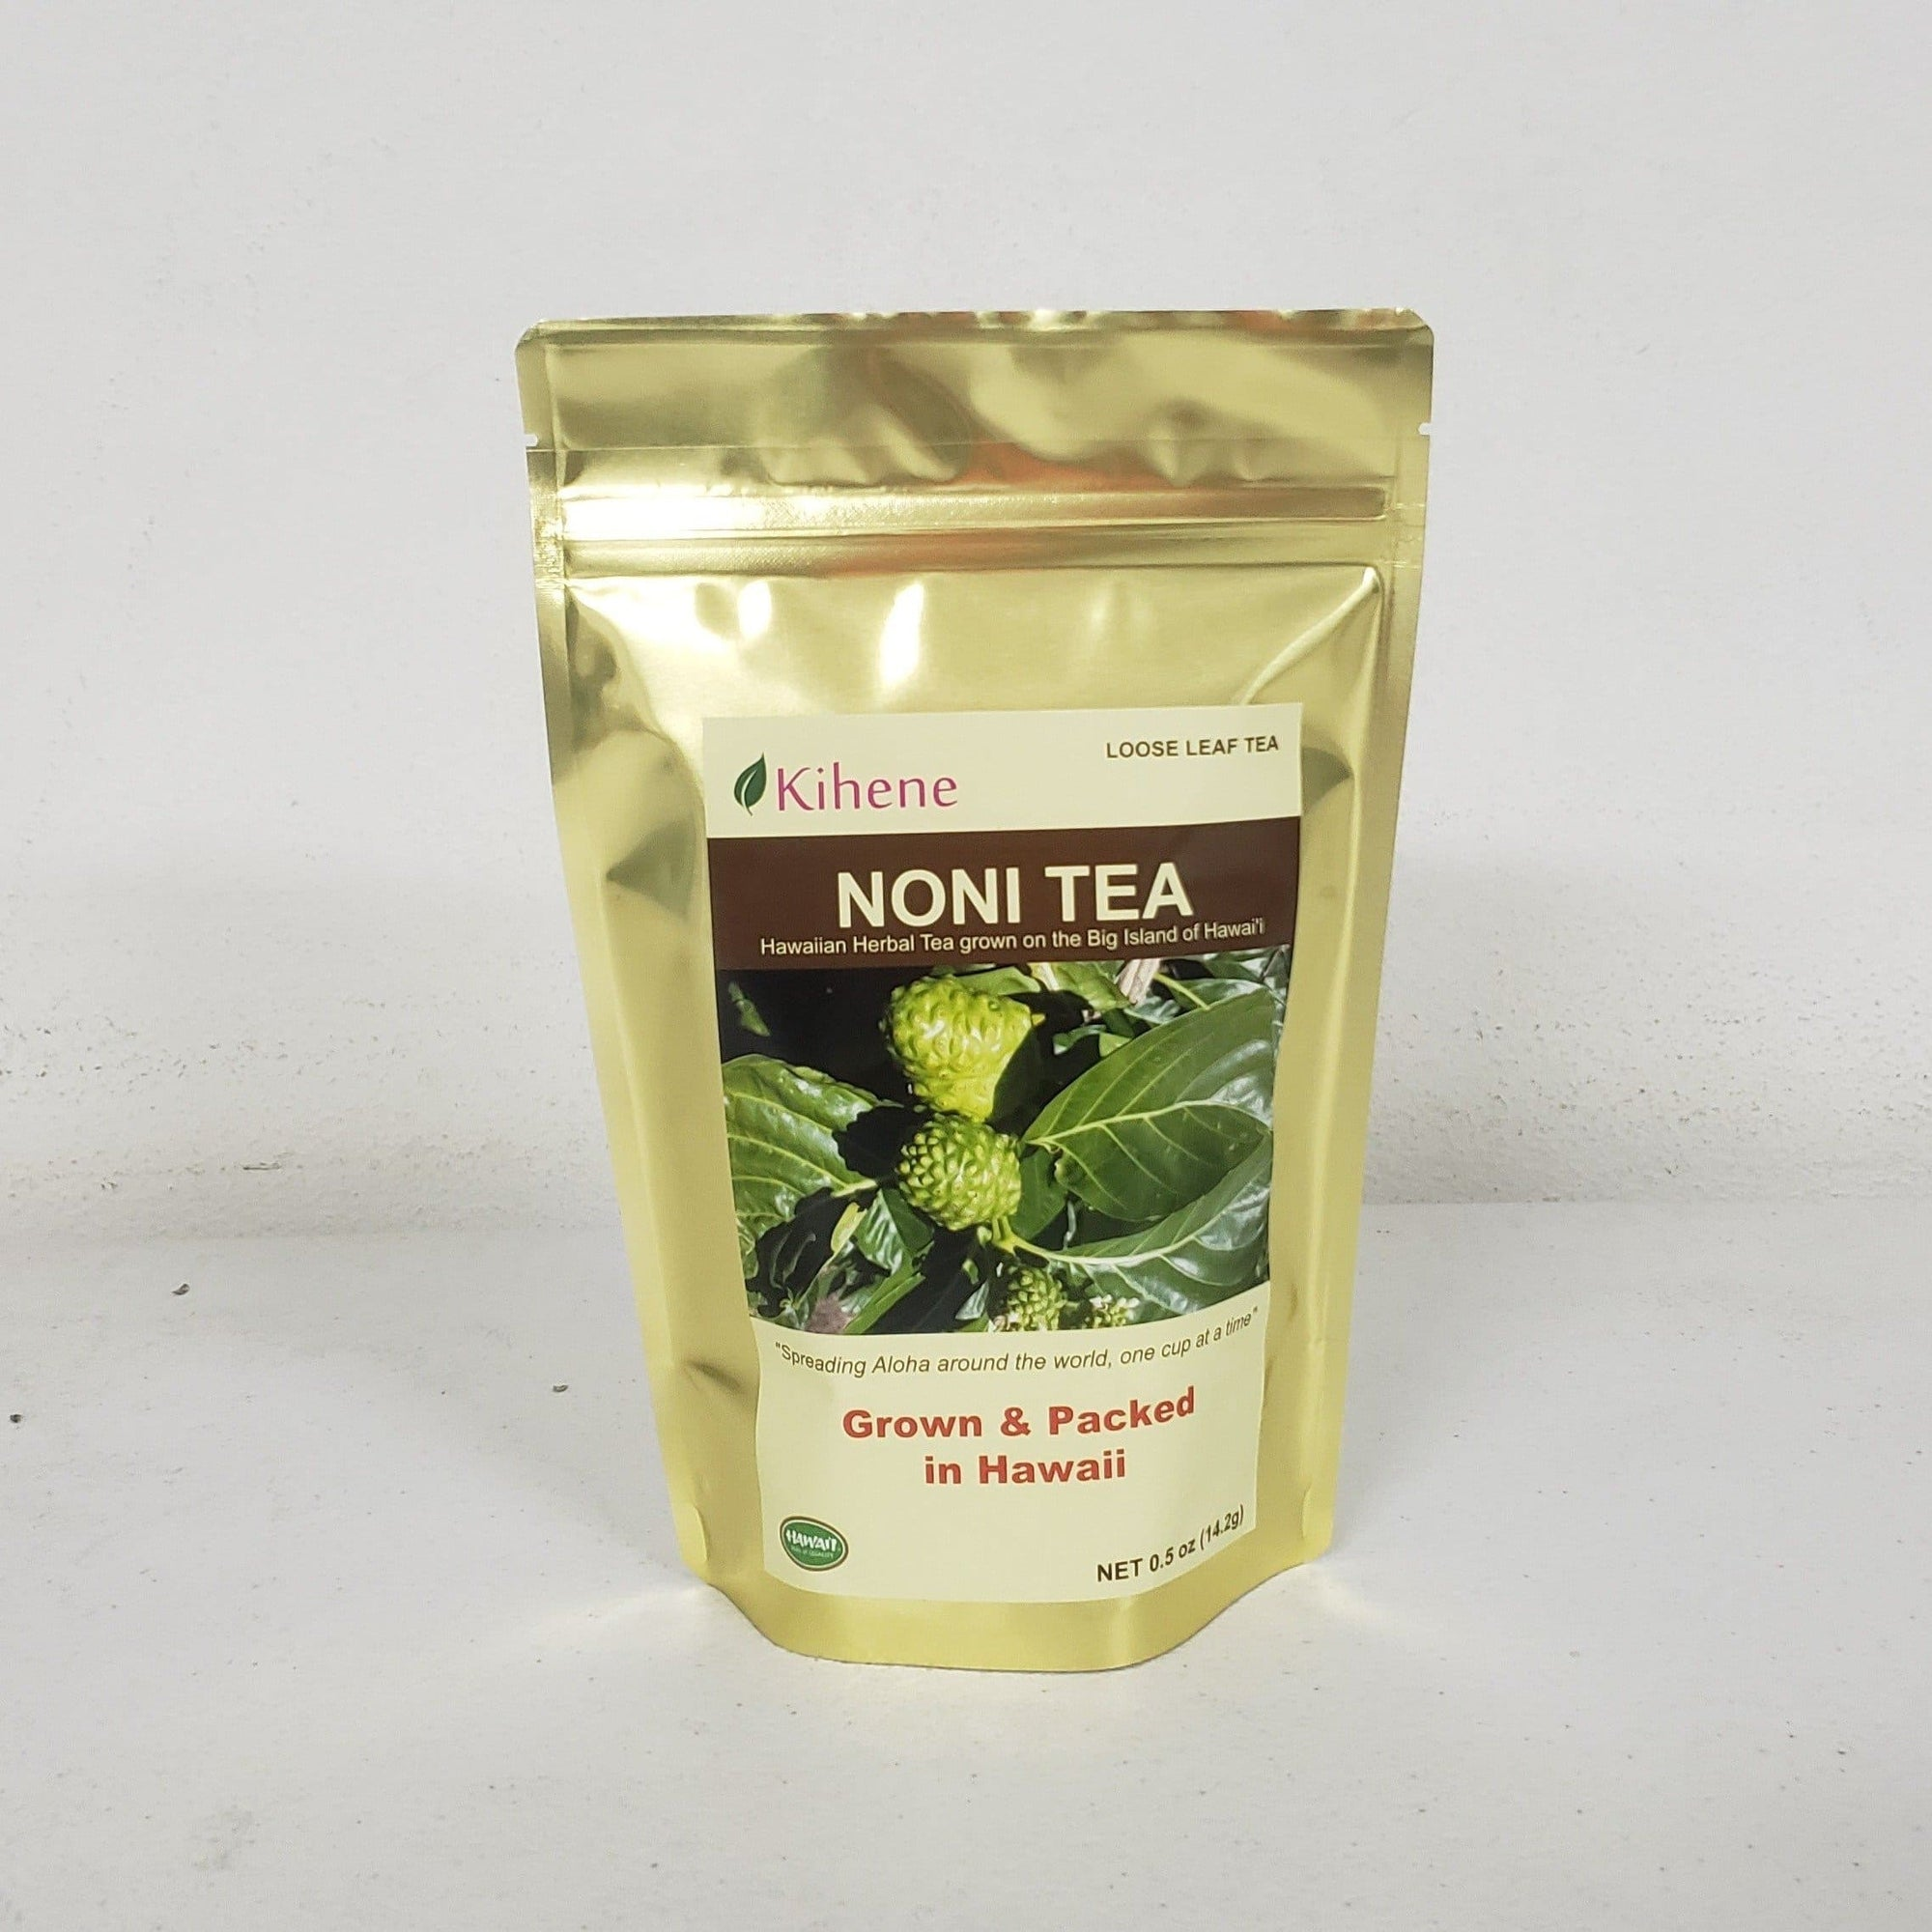 Noni Tea 14.2 grams